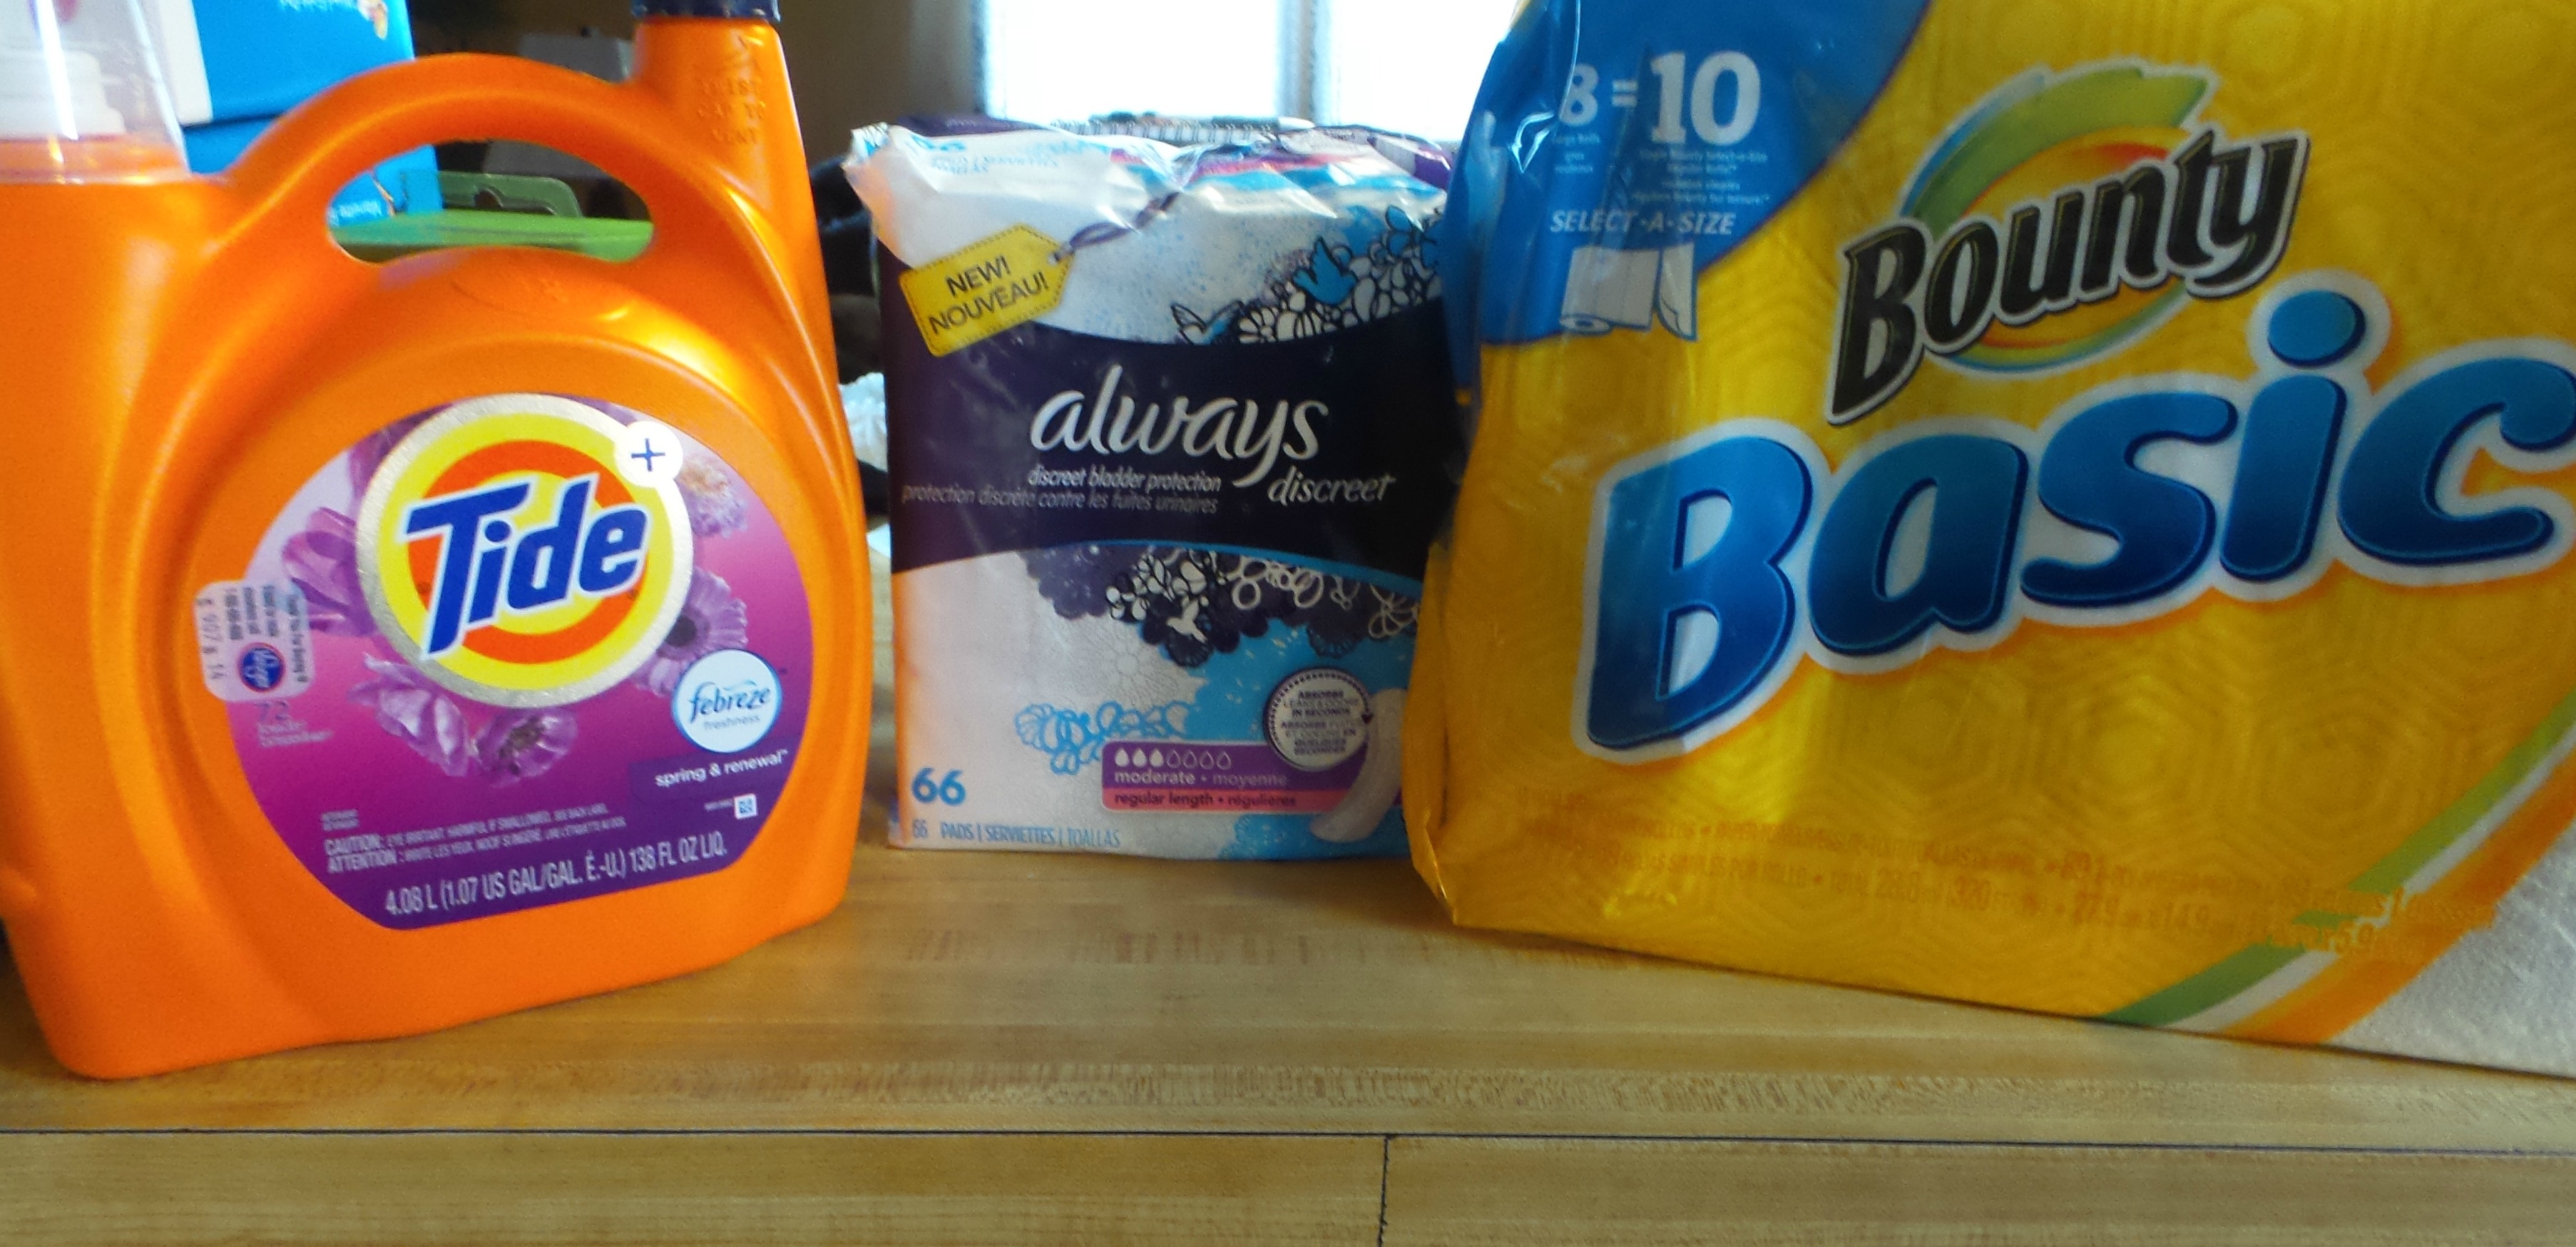 Low Prices on P&g Products